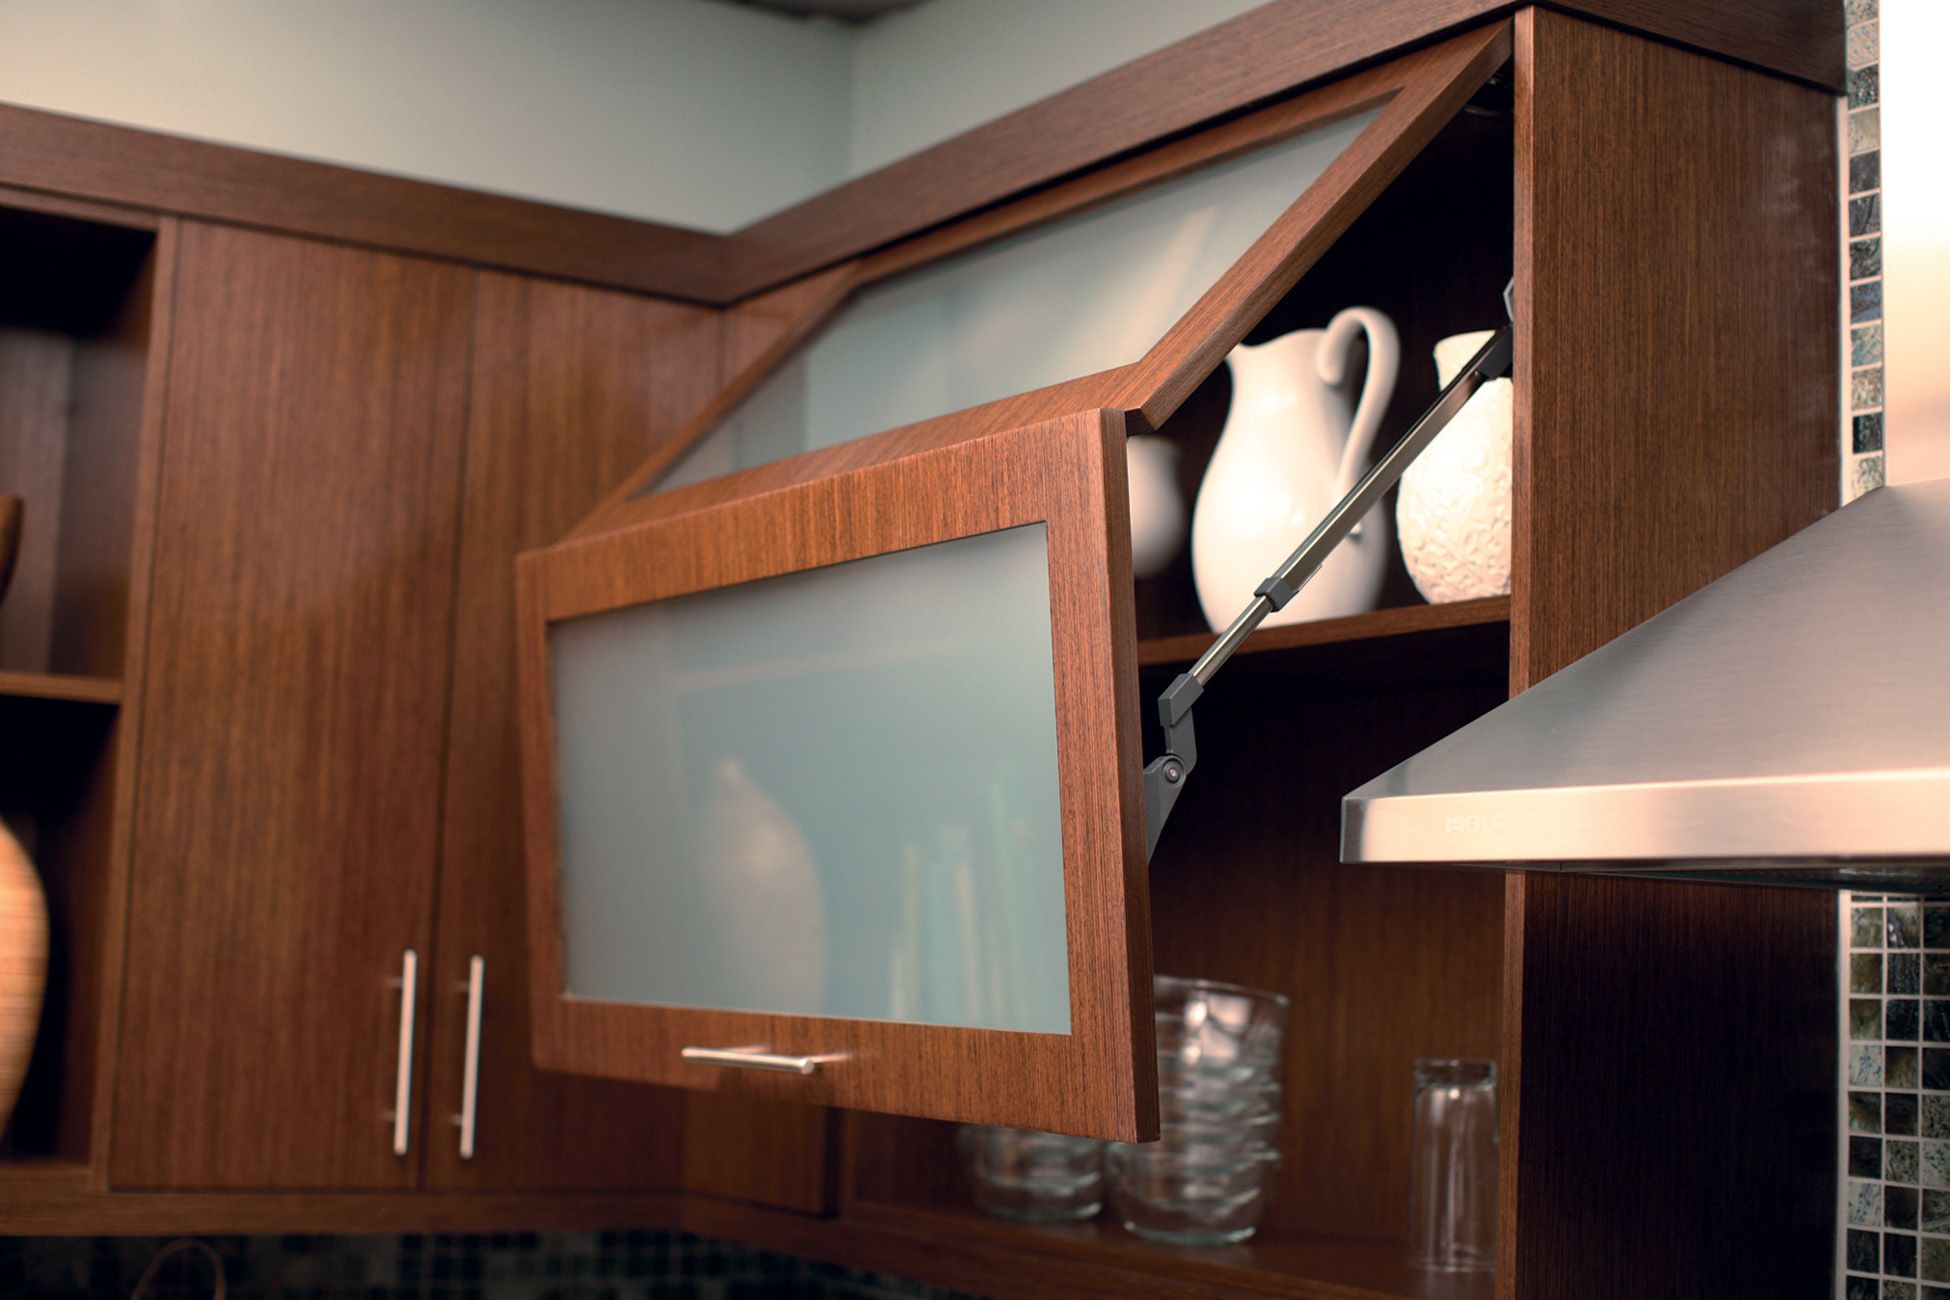 Dura Supreme Cabinetry Kitchen Bath Cabinetry Cabinet Door Styles Urban Loft Cabinet Door Storage